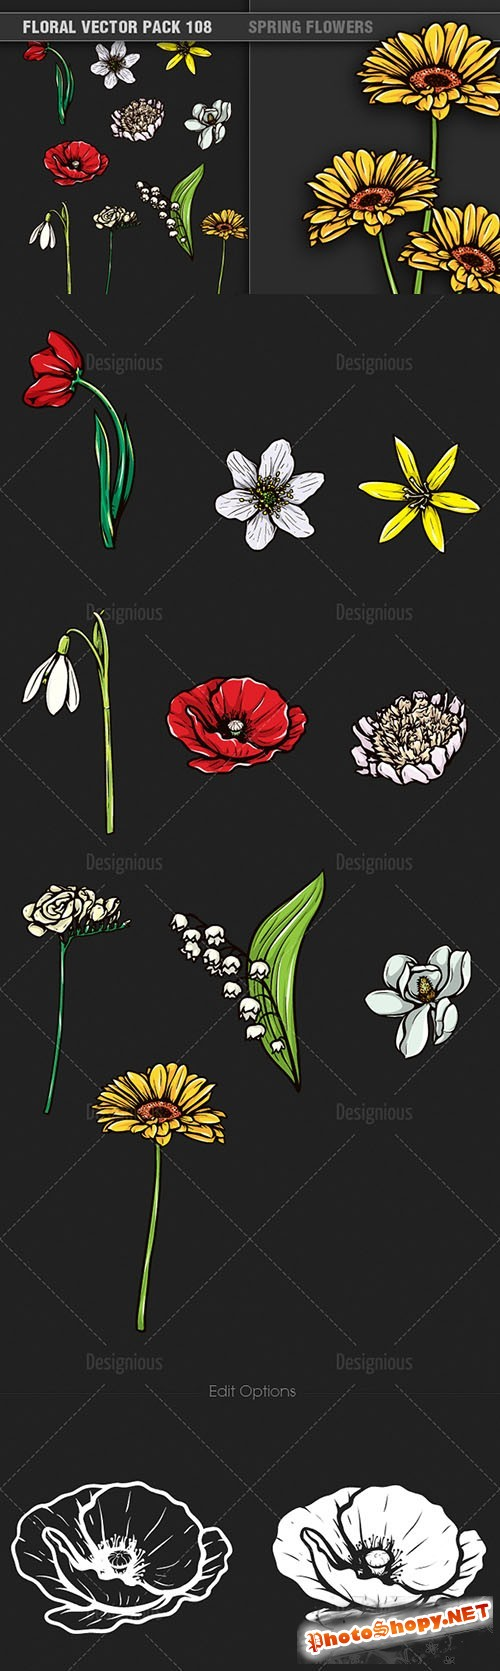 Spring Flowers Vector Illustrations Pack 108